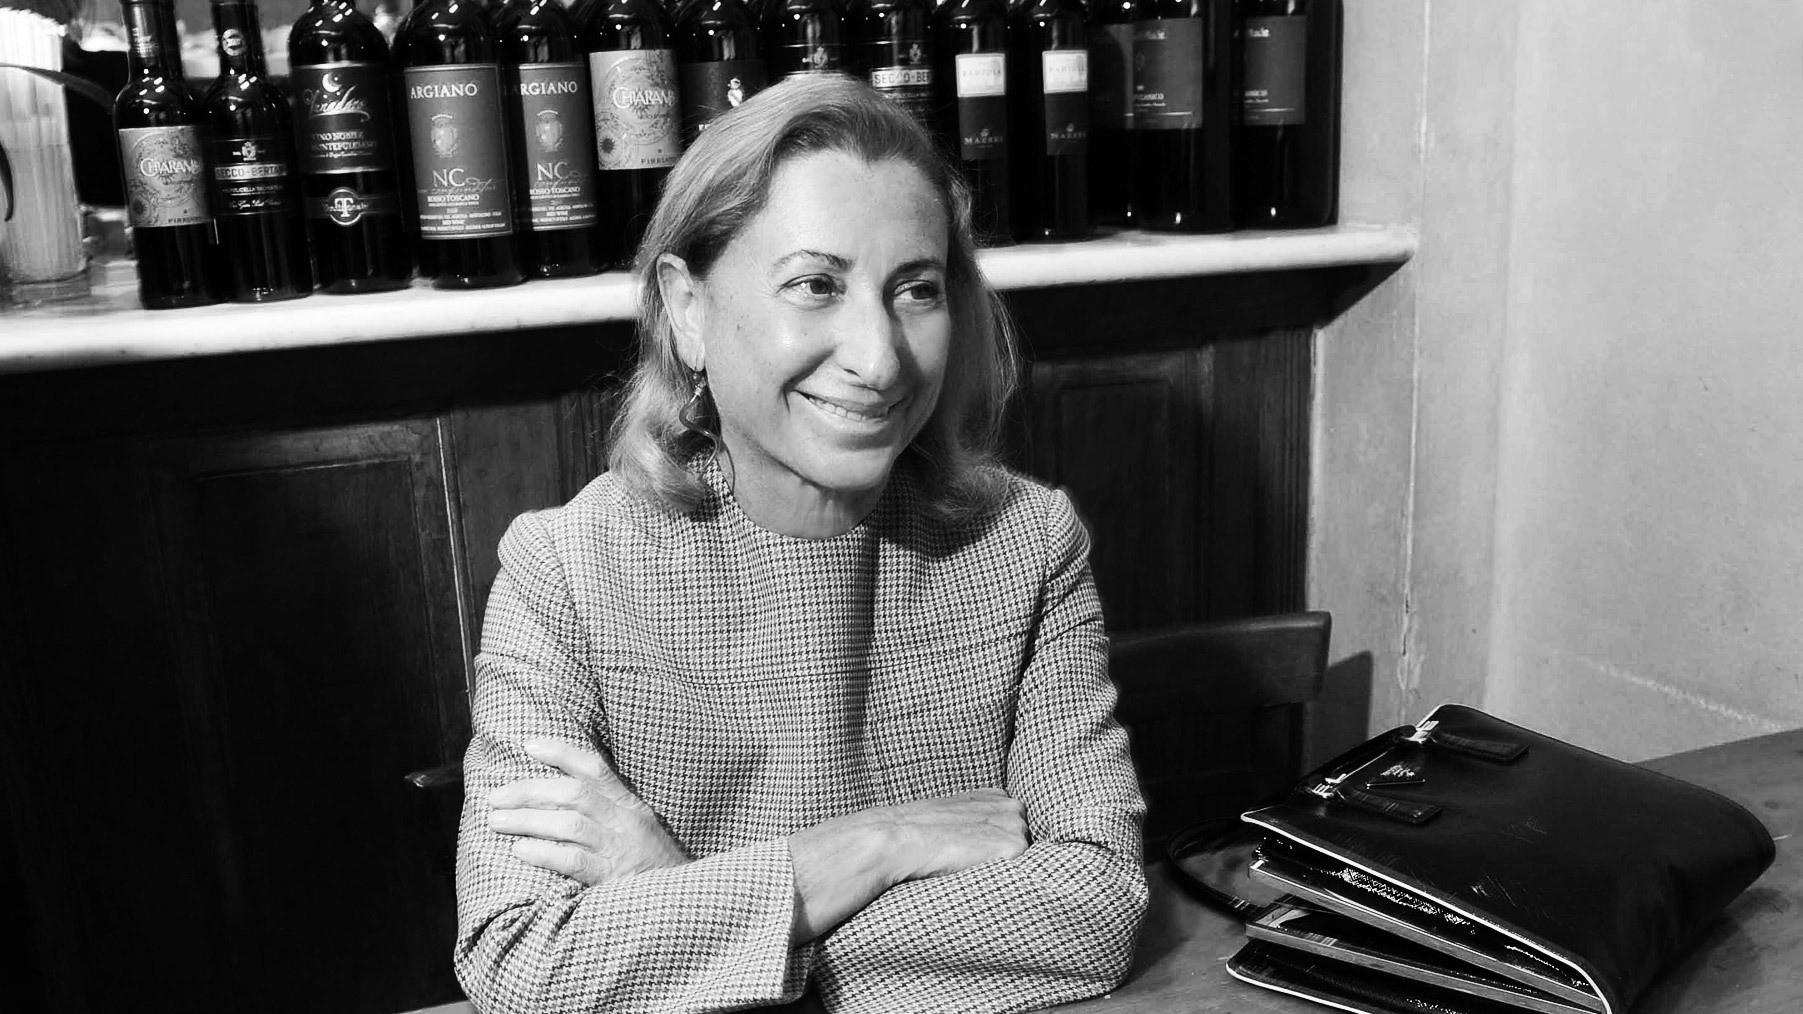 miuccia prada thinks you should get a job